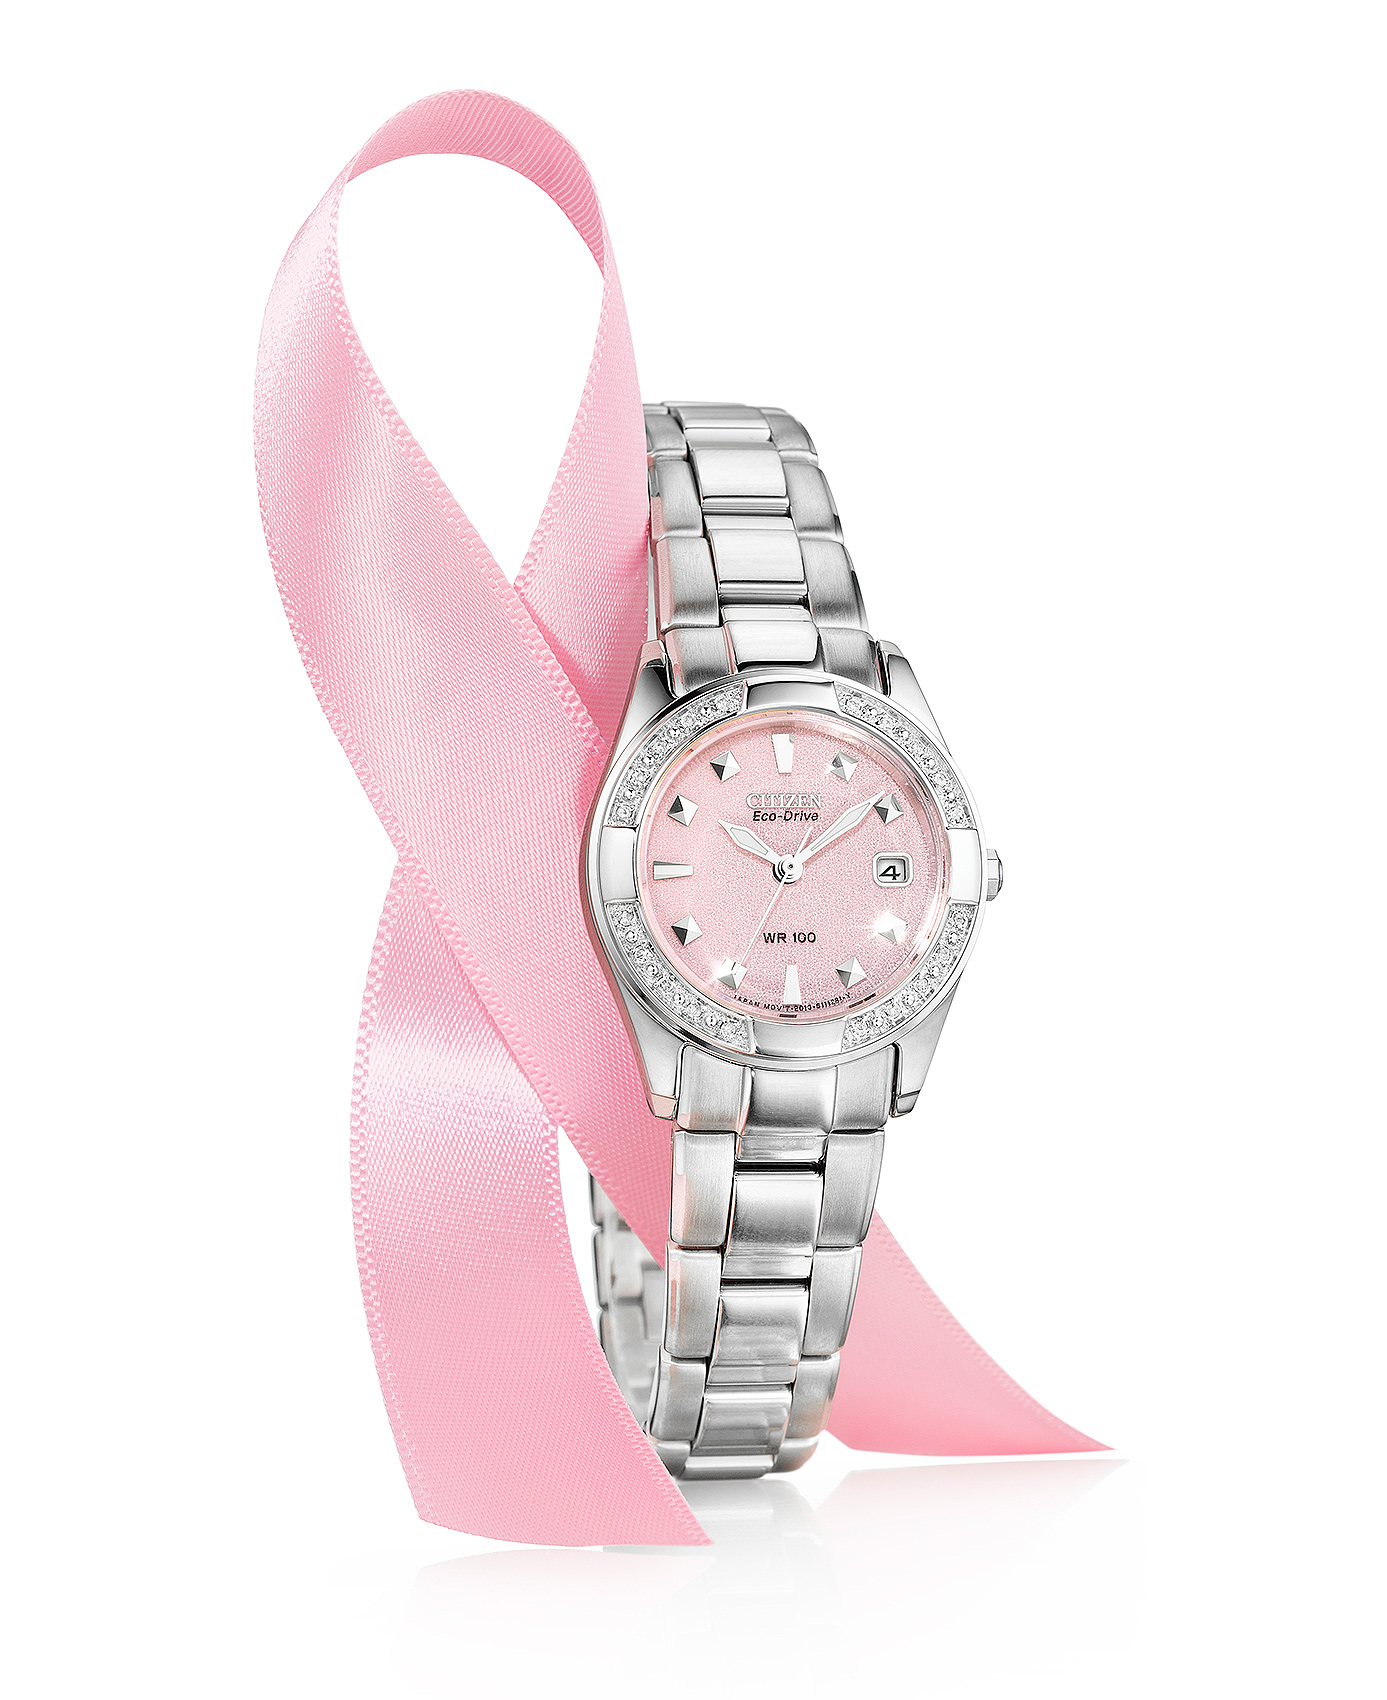 Citizen Breast Cancer Awareness